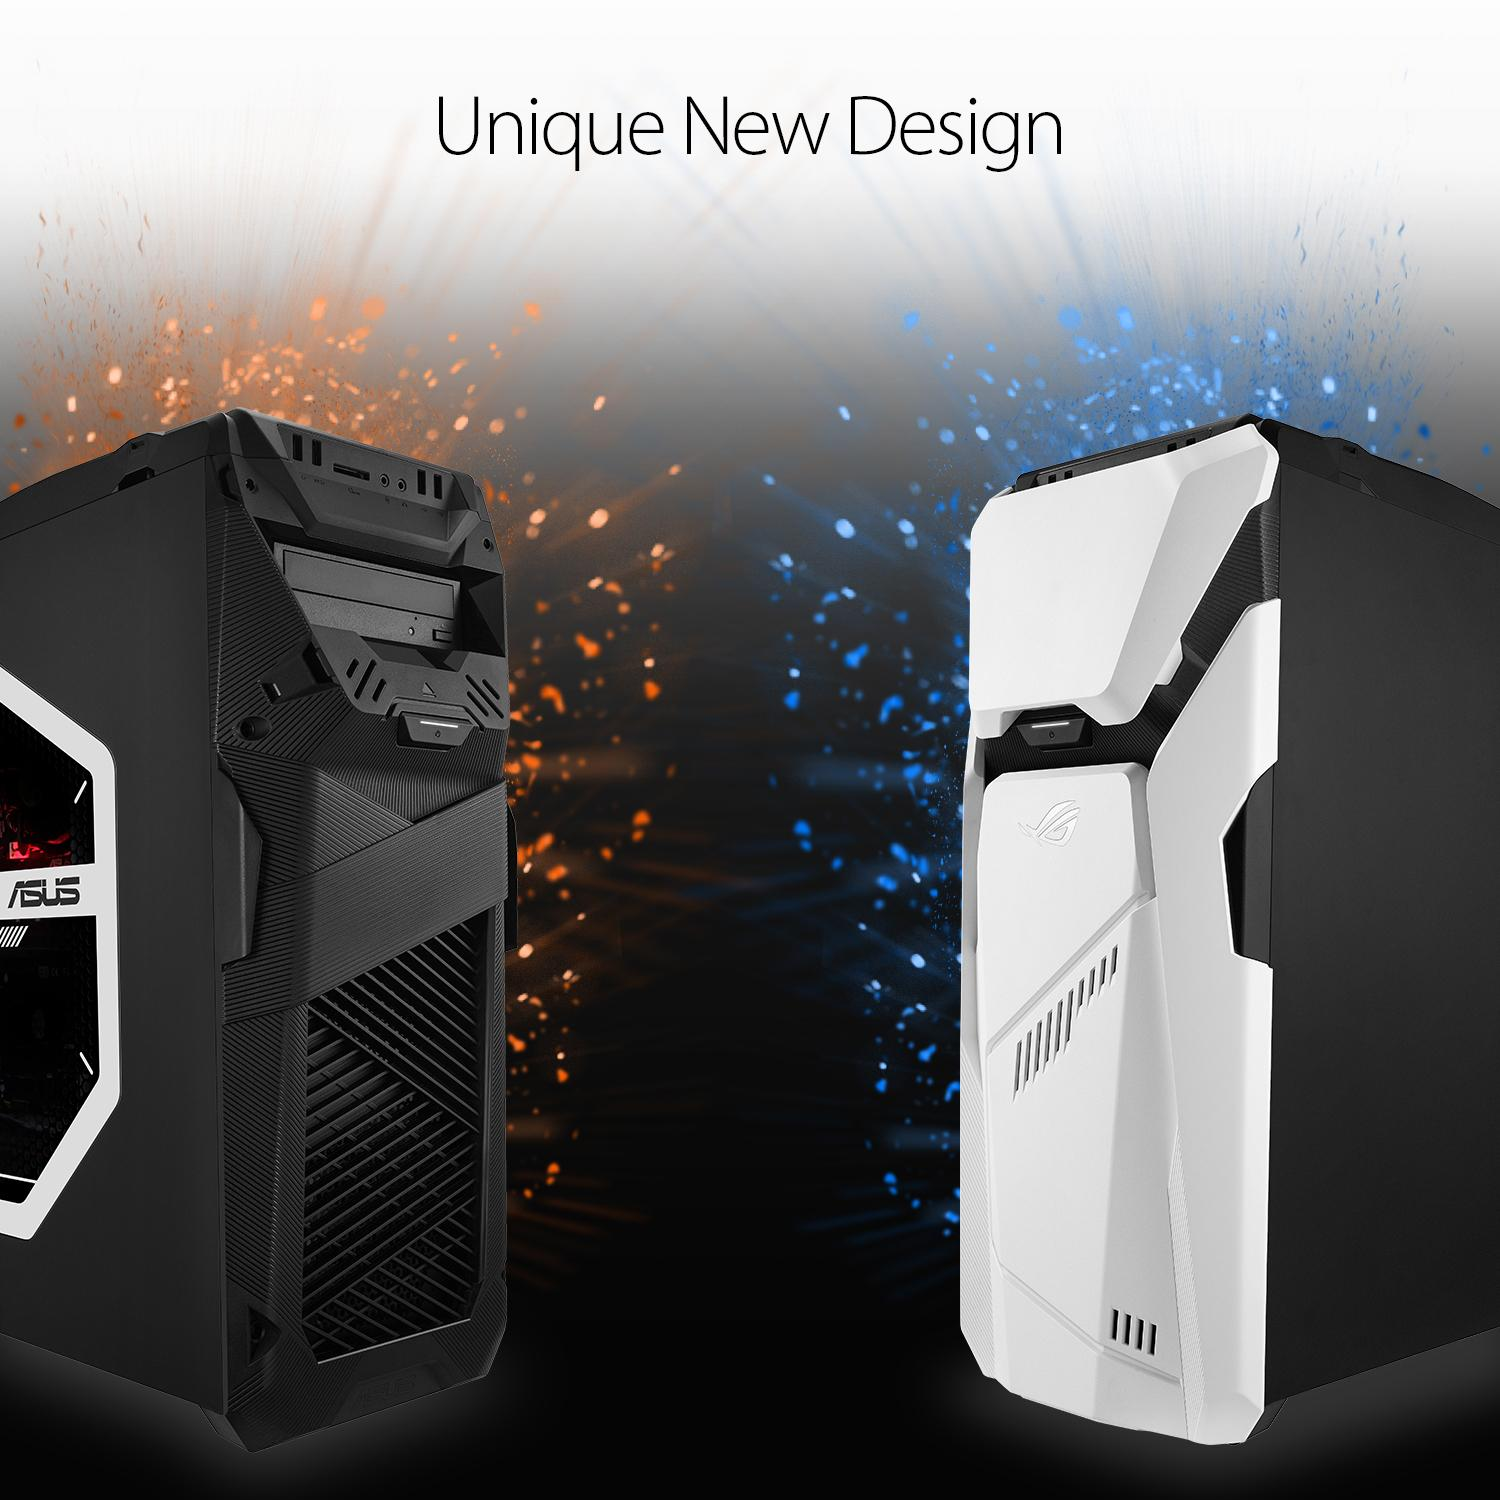 Amazon Com Asus Rog Strix Gd30 Gaming Desktop Nv Geforce Gtx 1060